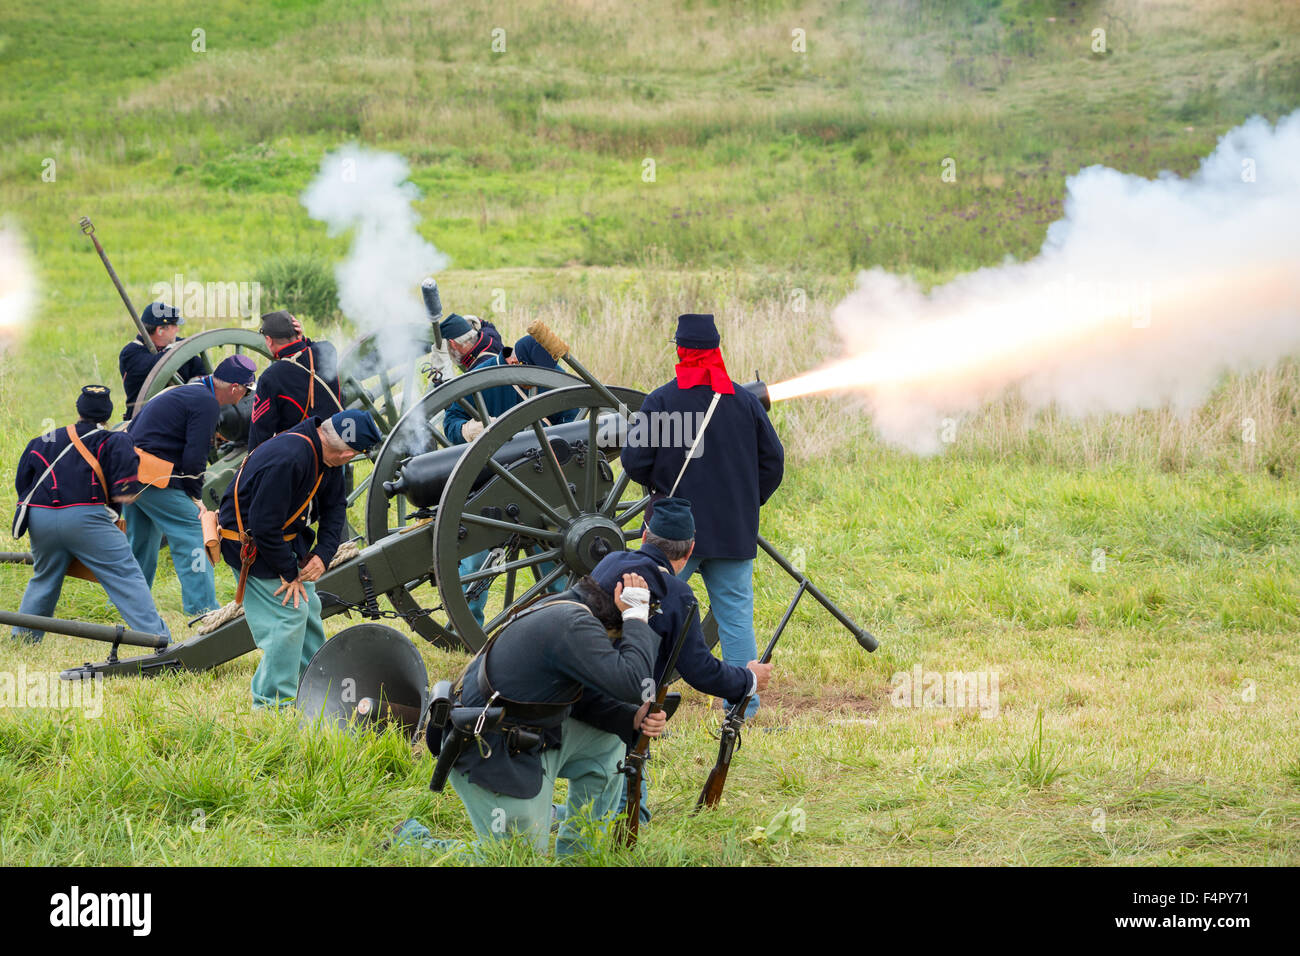 Unidentifiable union soldiers fire a cannon during a reenactment of the Civil War Battle of Gettysburg. - Stock Image